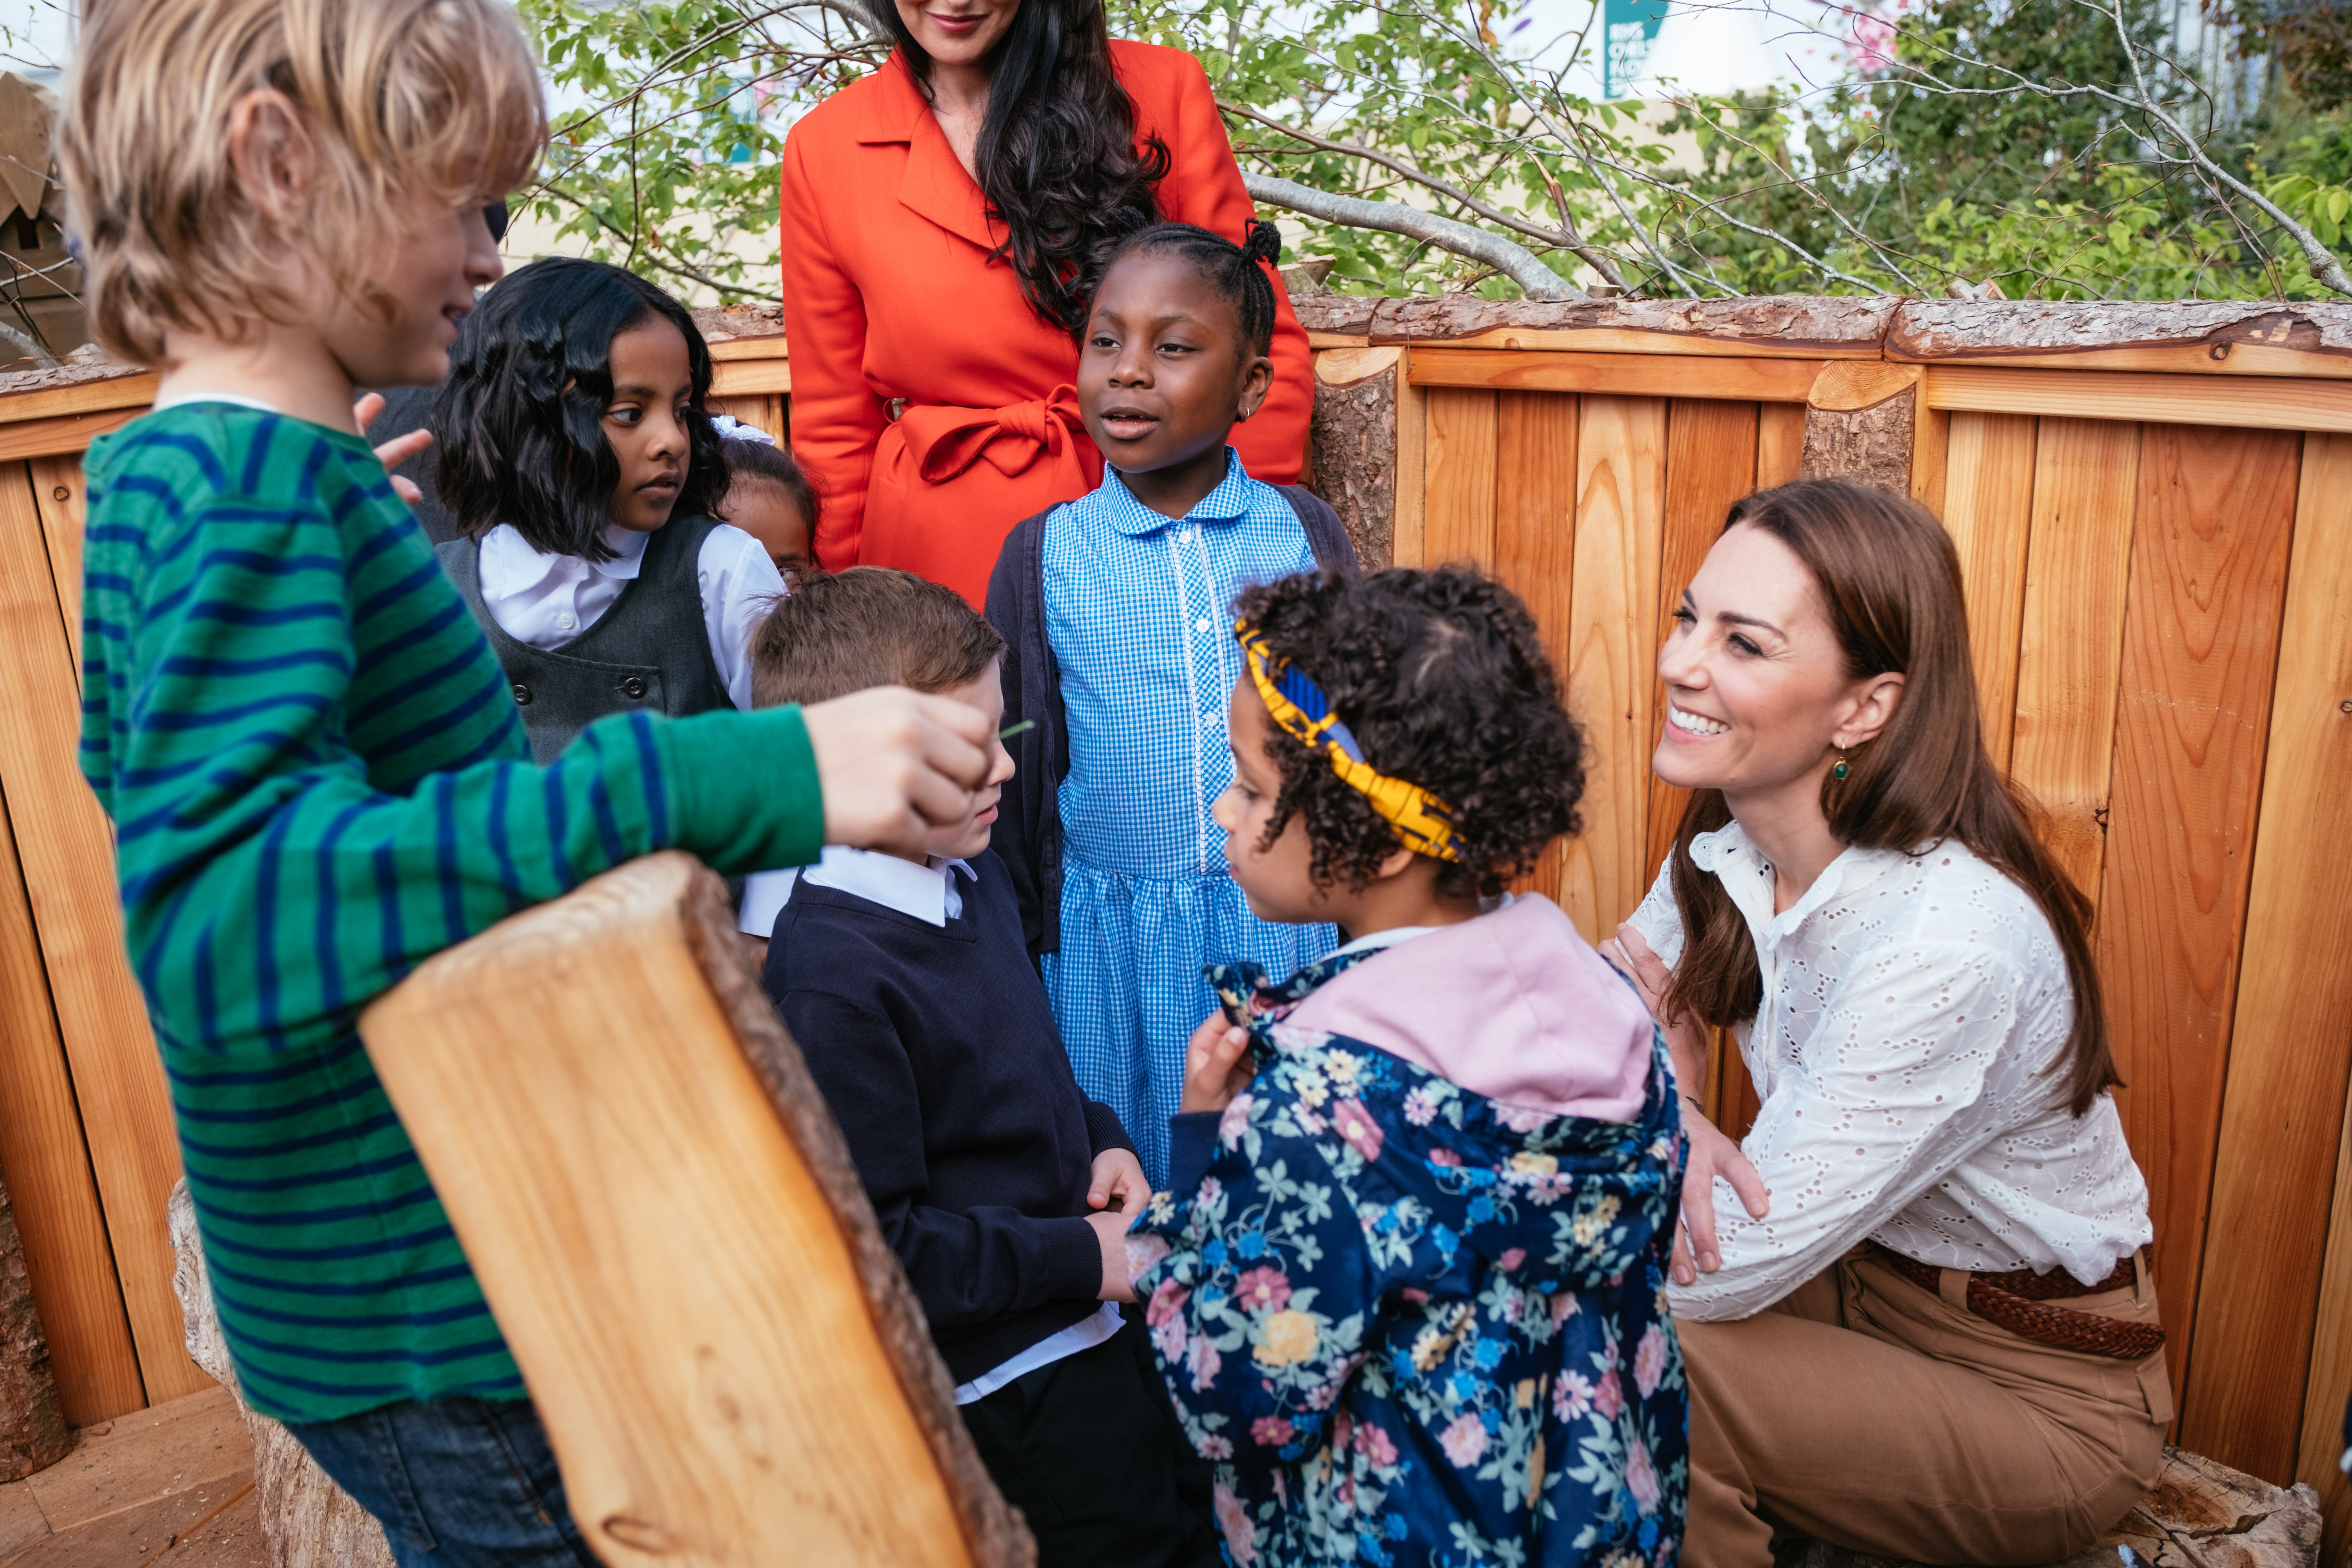 The Duchess of Cambridge and local schoolchildren explore the RHS Back to Nature Garden at the Chelsea Flower Show.